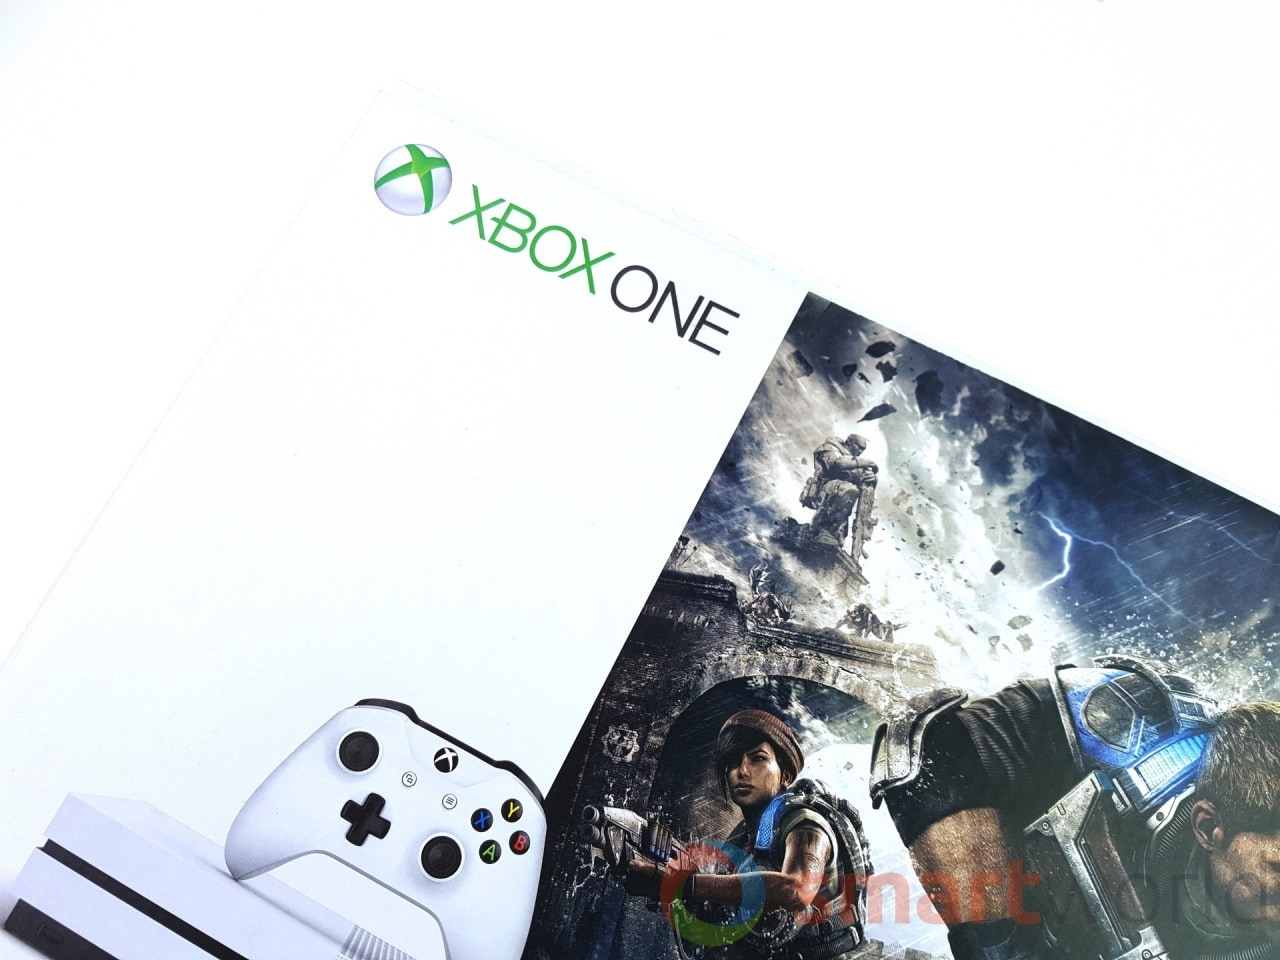 Recensione Xbox One S - La confezione di Xbox One S Limited Bundle comprensivo di Gears of War 4.